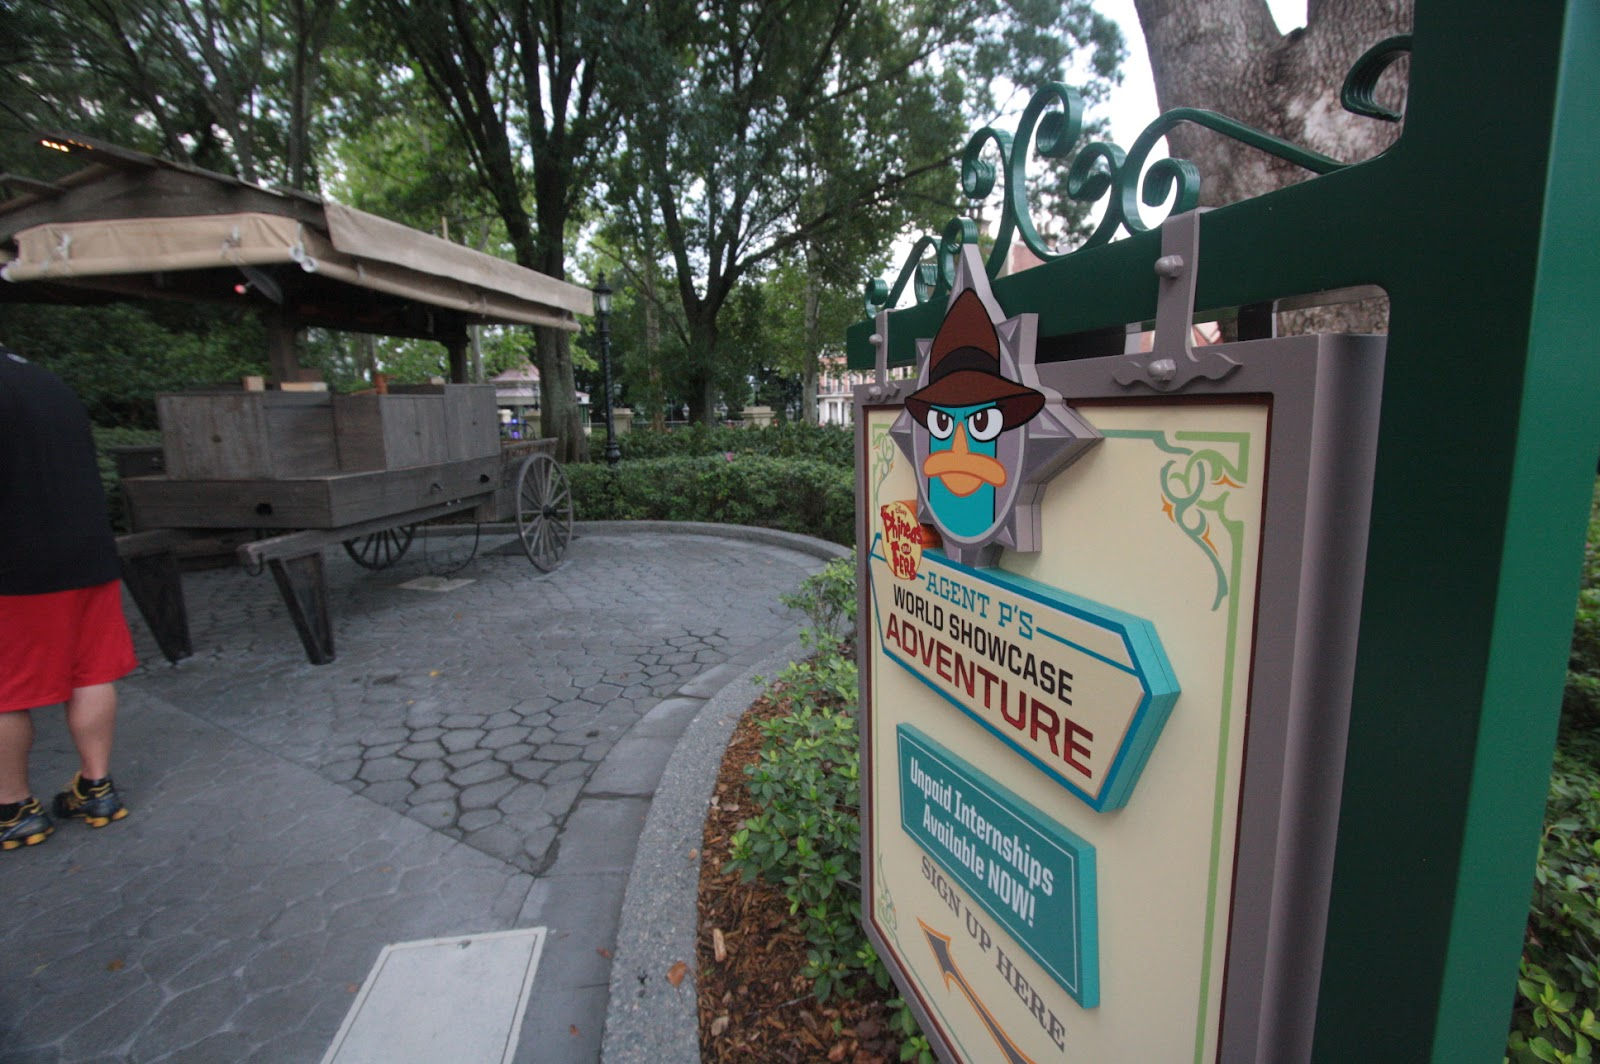 Agent P's World Showcase Adventure Sign Up Location in Epcot